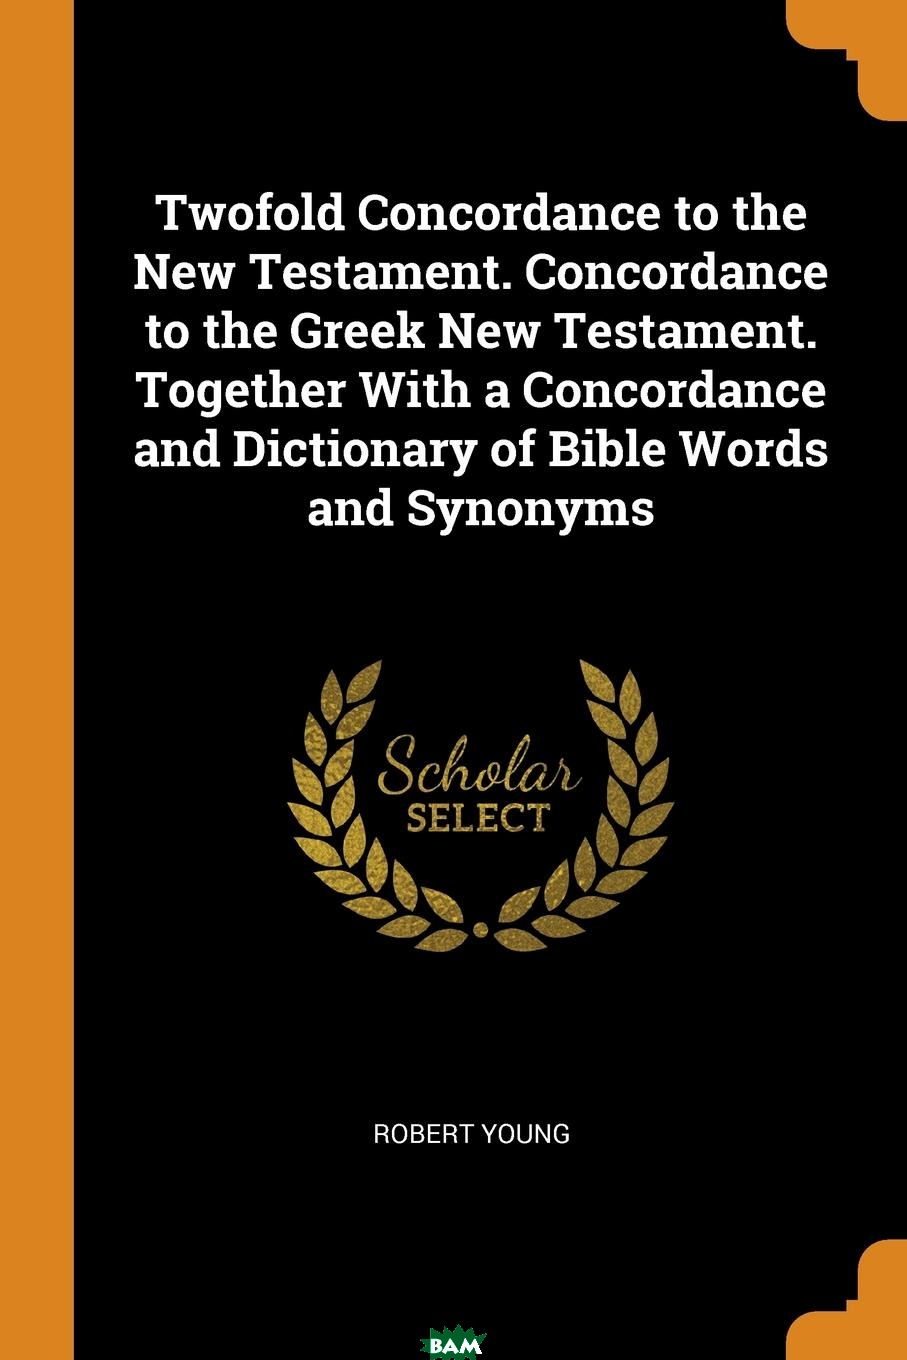 Купить Twofold Concordance to the New Testament. Concordance to the Greek New Testament. Together With a Concordance and Dictionary of Bible Words and Synonyms, Robert Young, 9780342070831